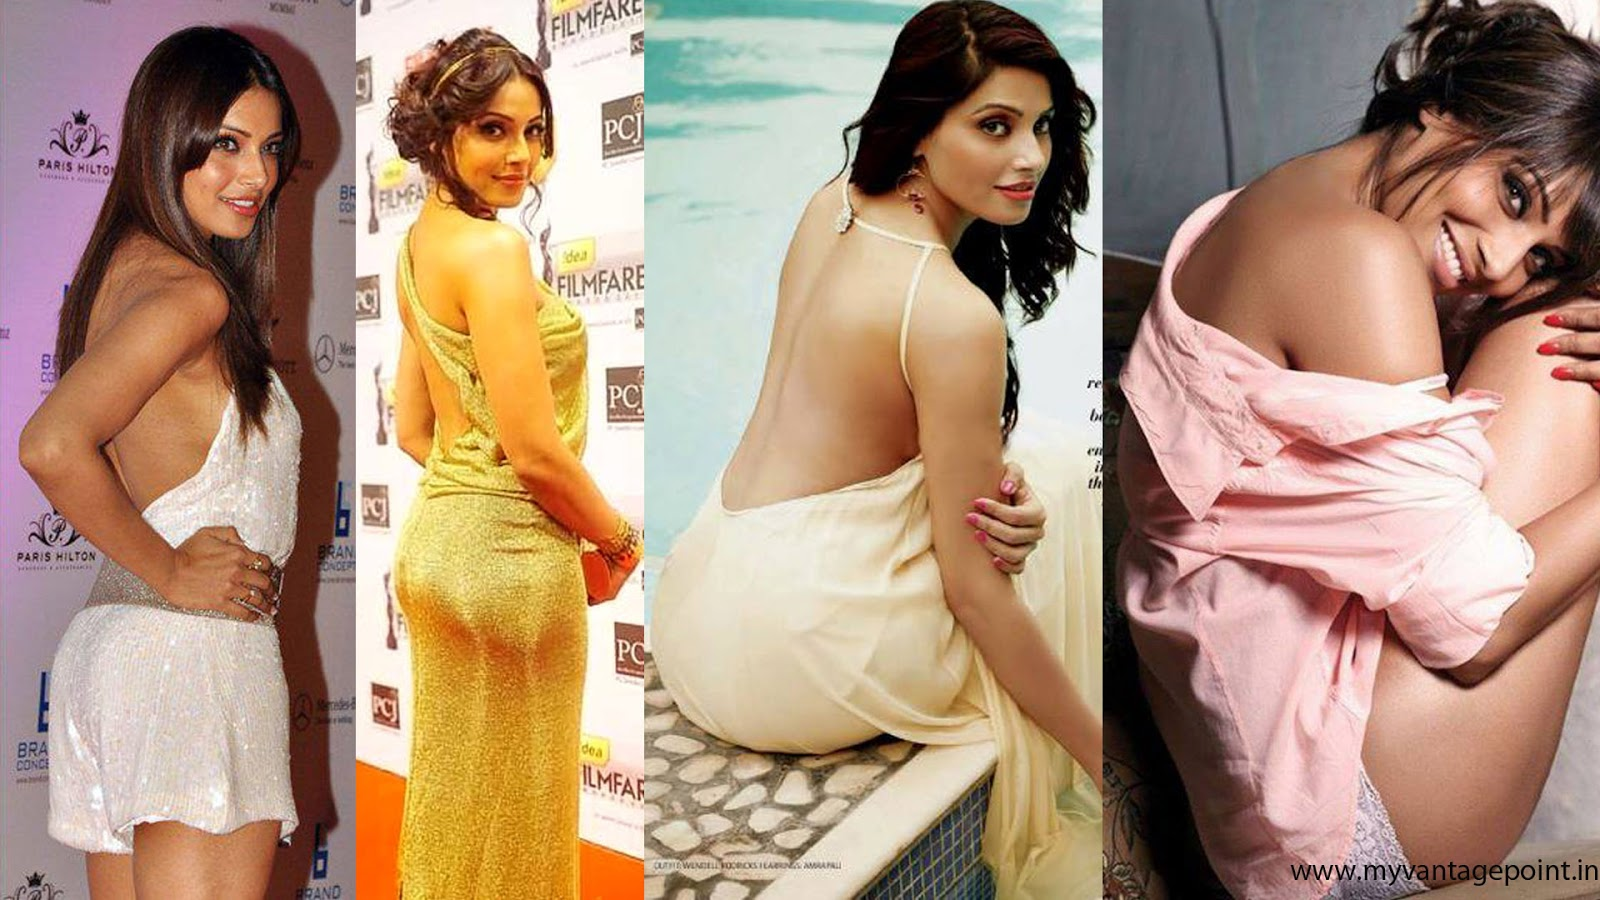 Bipasha Basu hot, Bipasha Basu sexy, Bipasha Basu HD wallpaper, Bipasha Basu Spicy Photos, Bipasha Basu backless, Bipasha Basu sexy back, Bipasha Basu backshow, Bipasha Basu thunder thighs, Bipasha Basu in tight dress, Bipasha Basu in short dress, Bipasha Basu best hot HD wallpaper